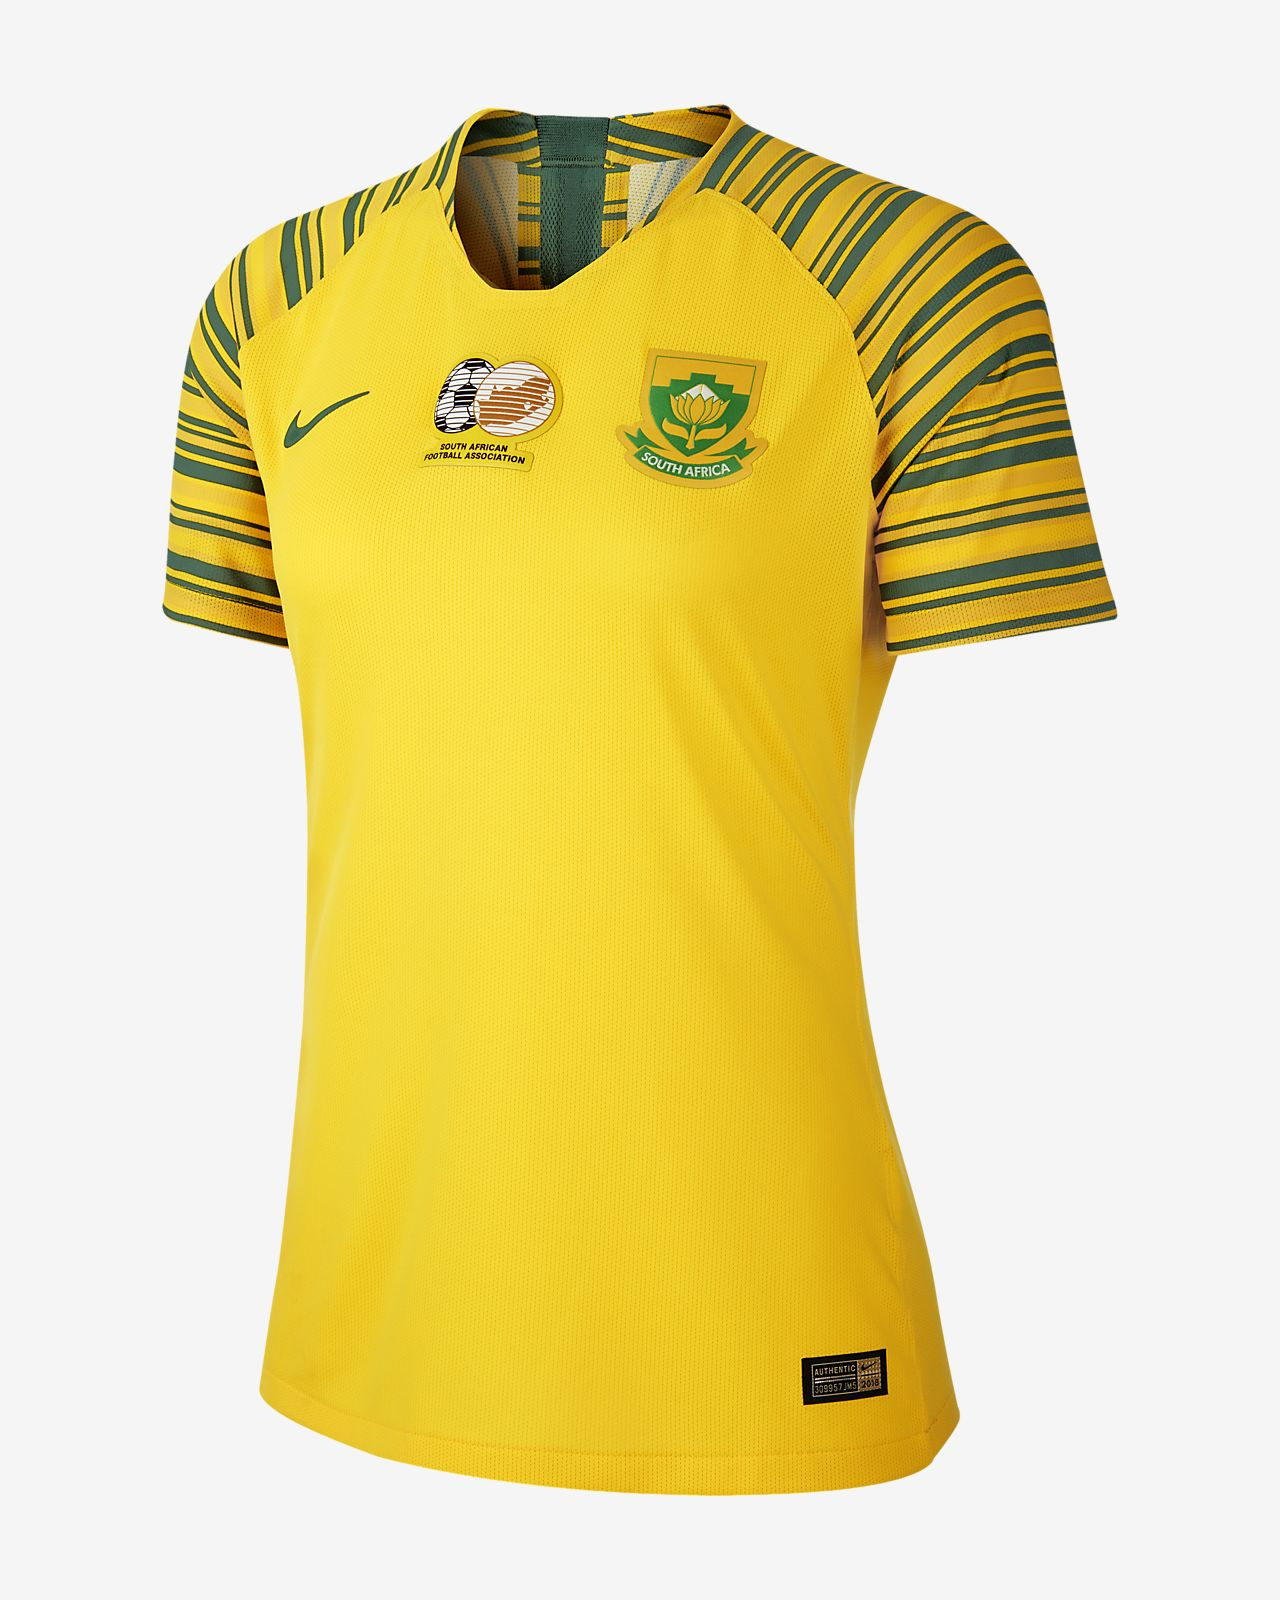 South Africa 2019 Home Voetbalshirt voor dames